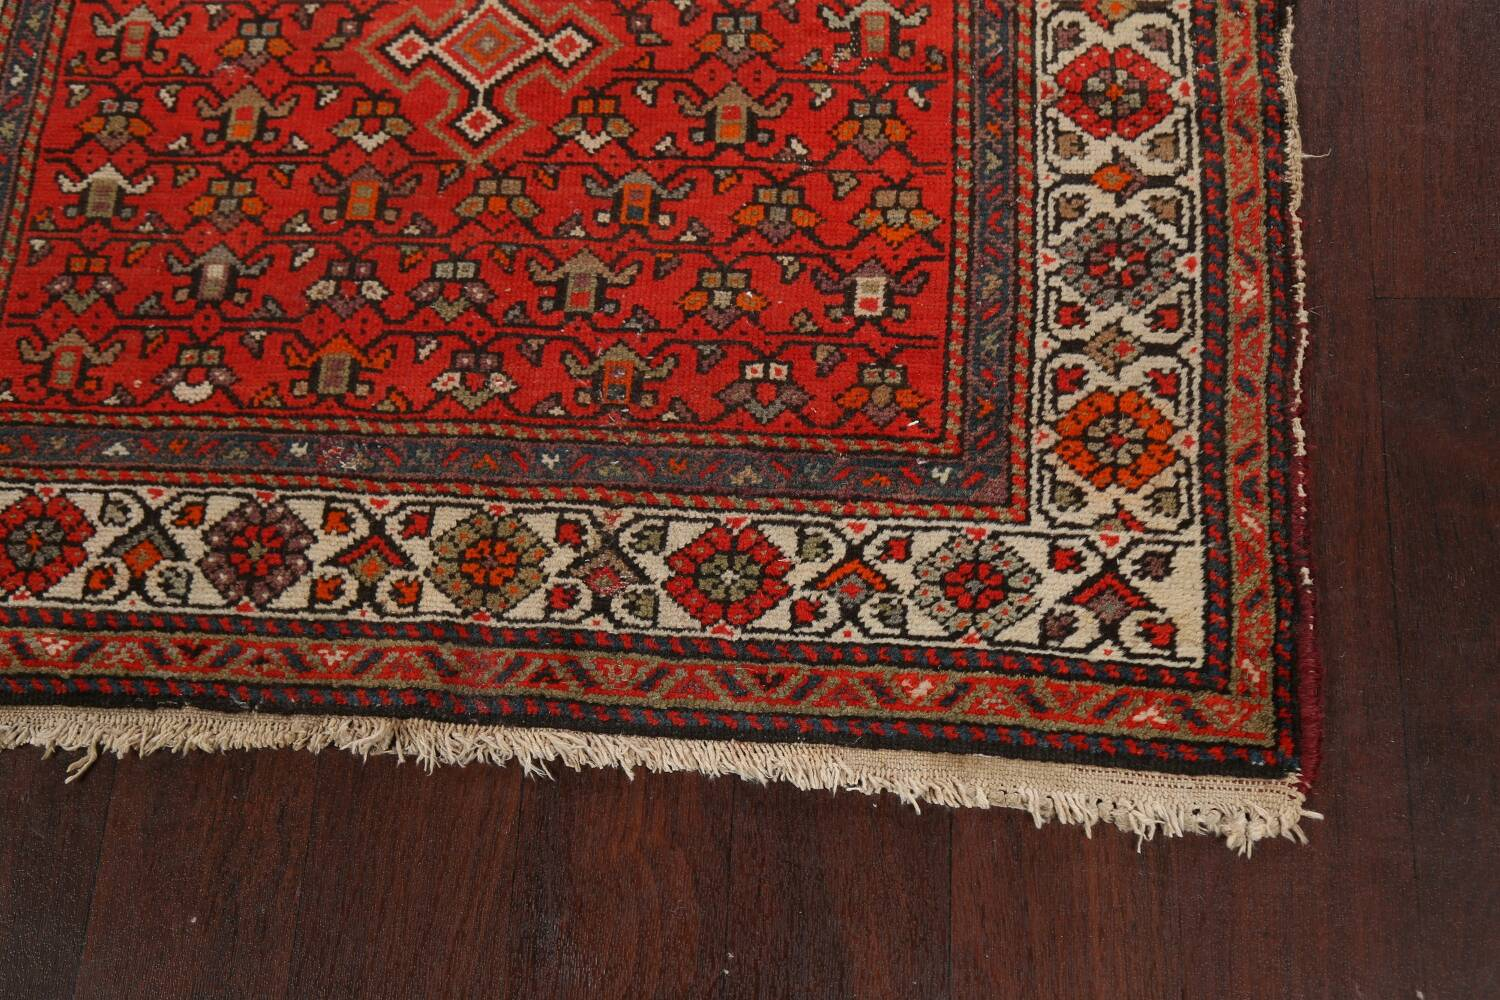 Antique Vegetable Dye Malayer Persian Runner Rug 3x11 image 5